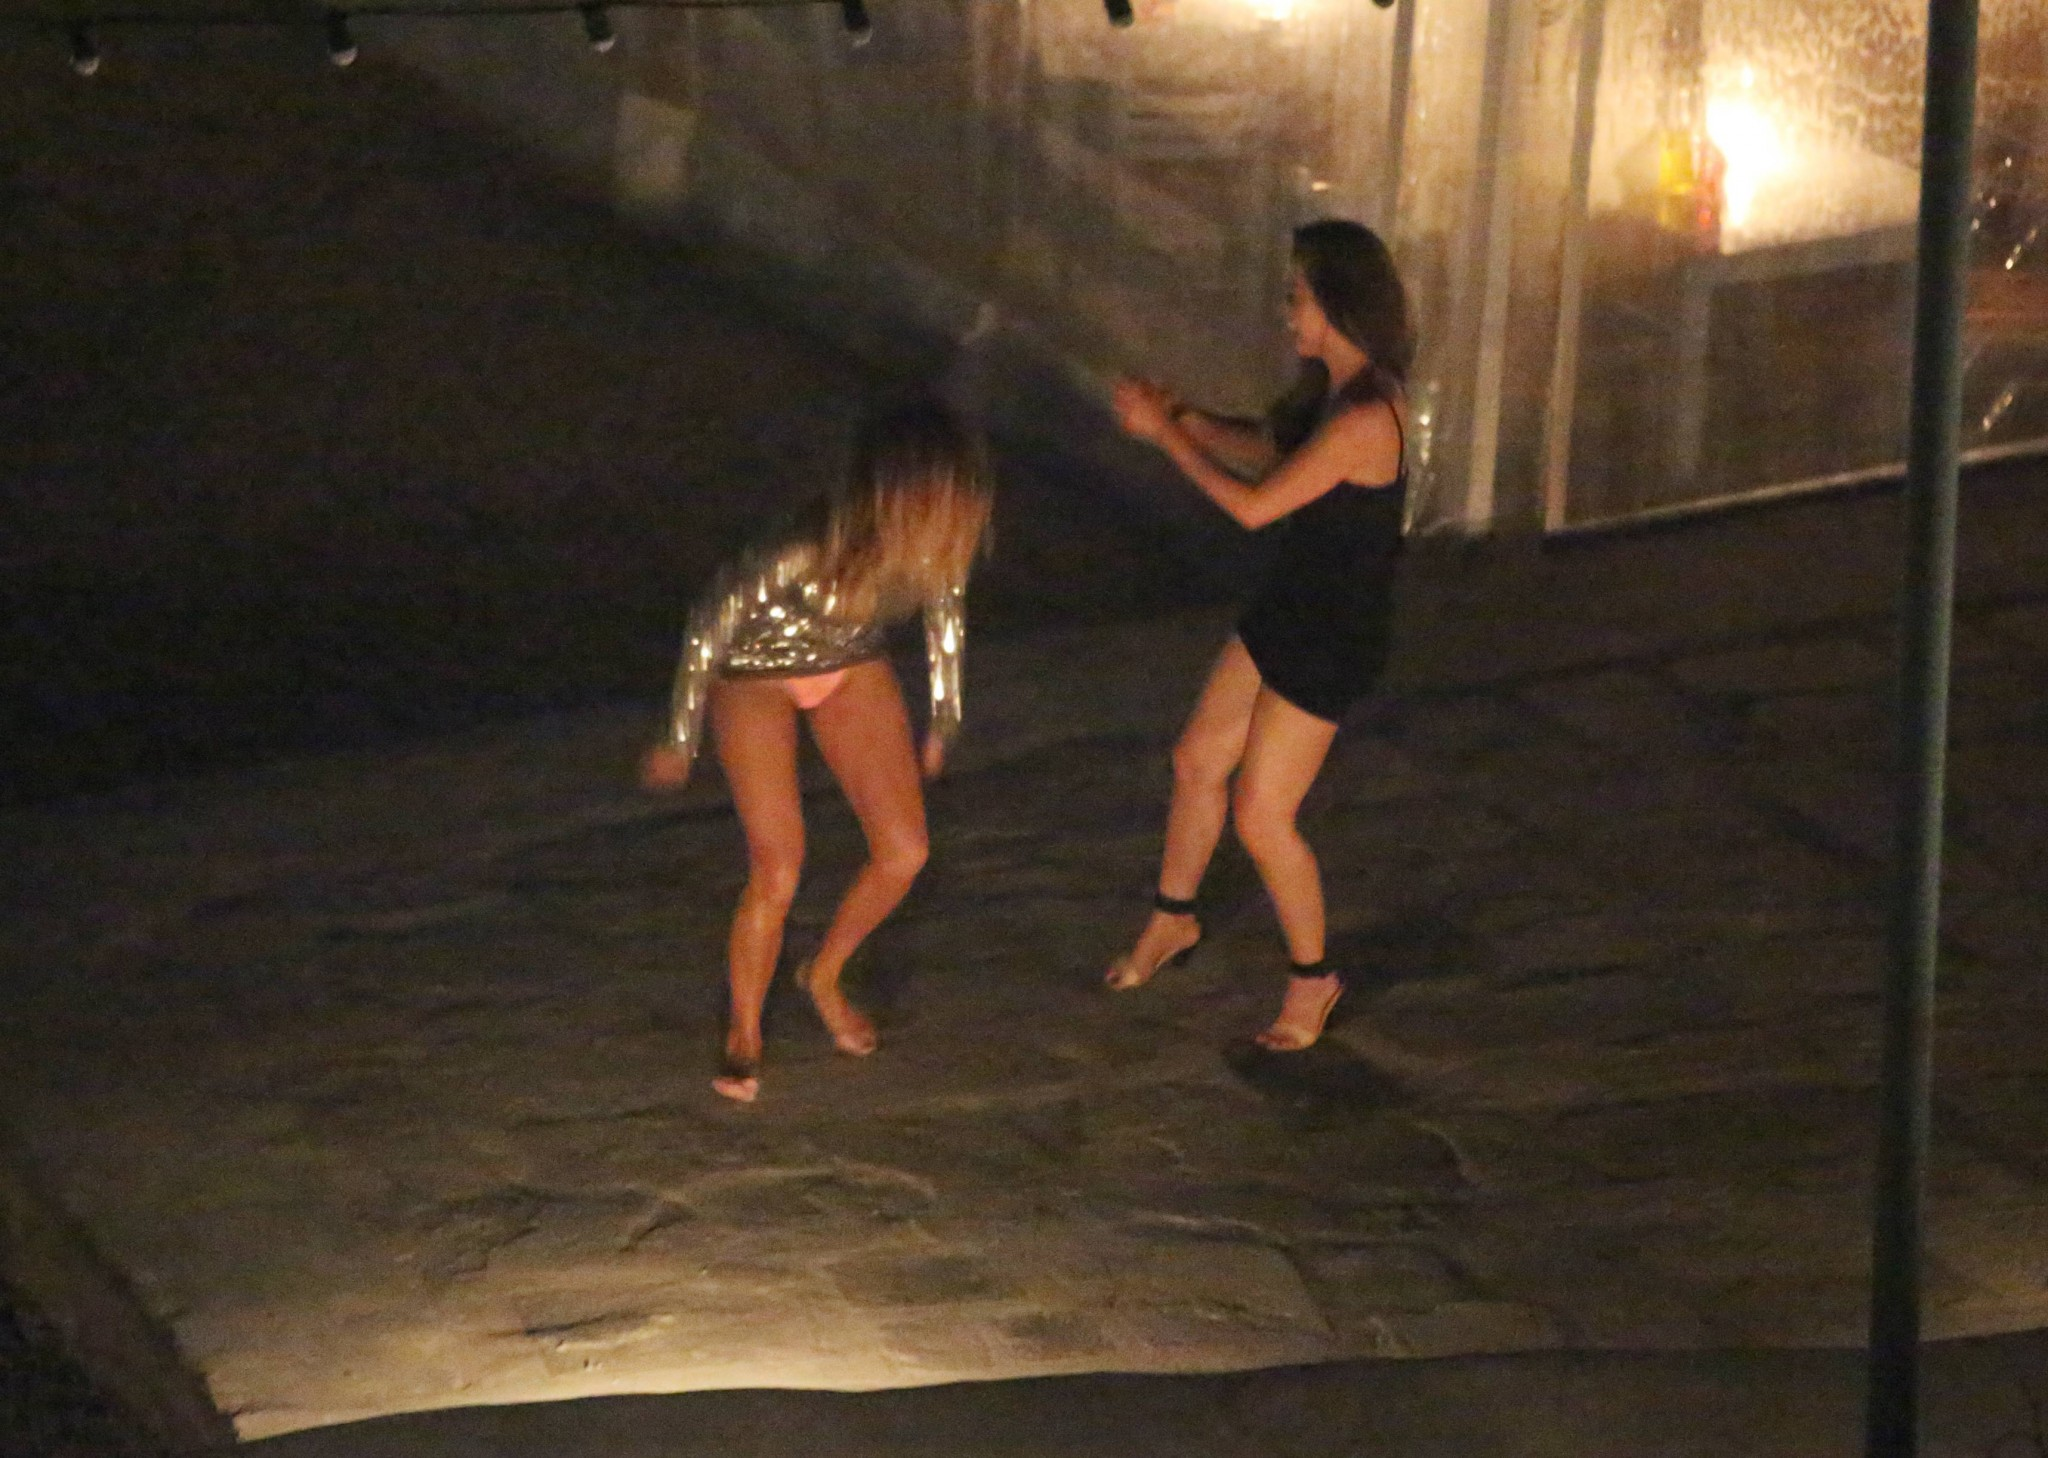 nicole-scherzinger-drunk-in-greece-panties-upskirt-6